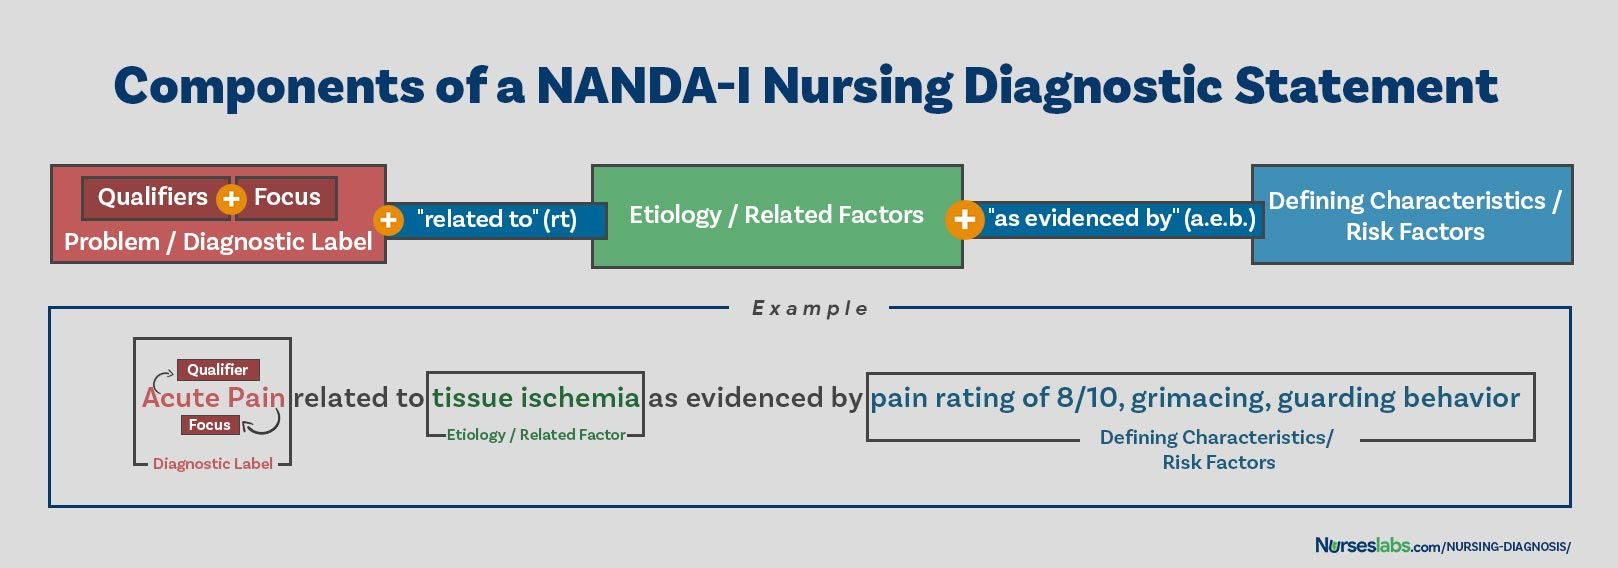 BUILDING BLOCKS OF A DIAGNOSTIC STATEMENT. Components of an NDx may include: probem, etiology, and defining characteristics.